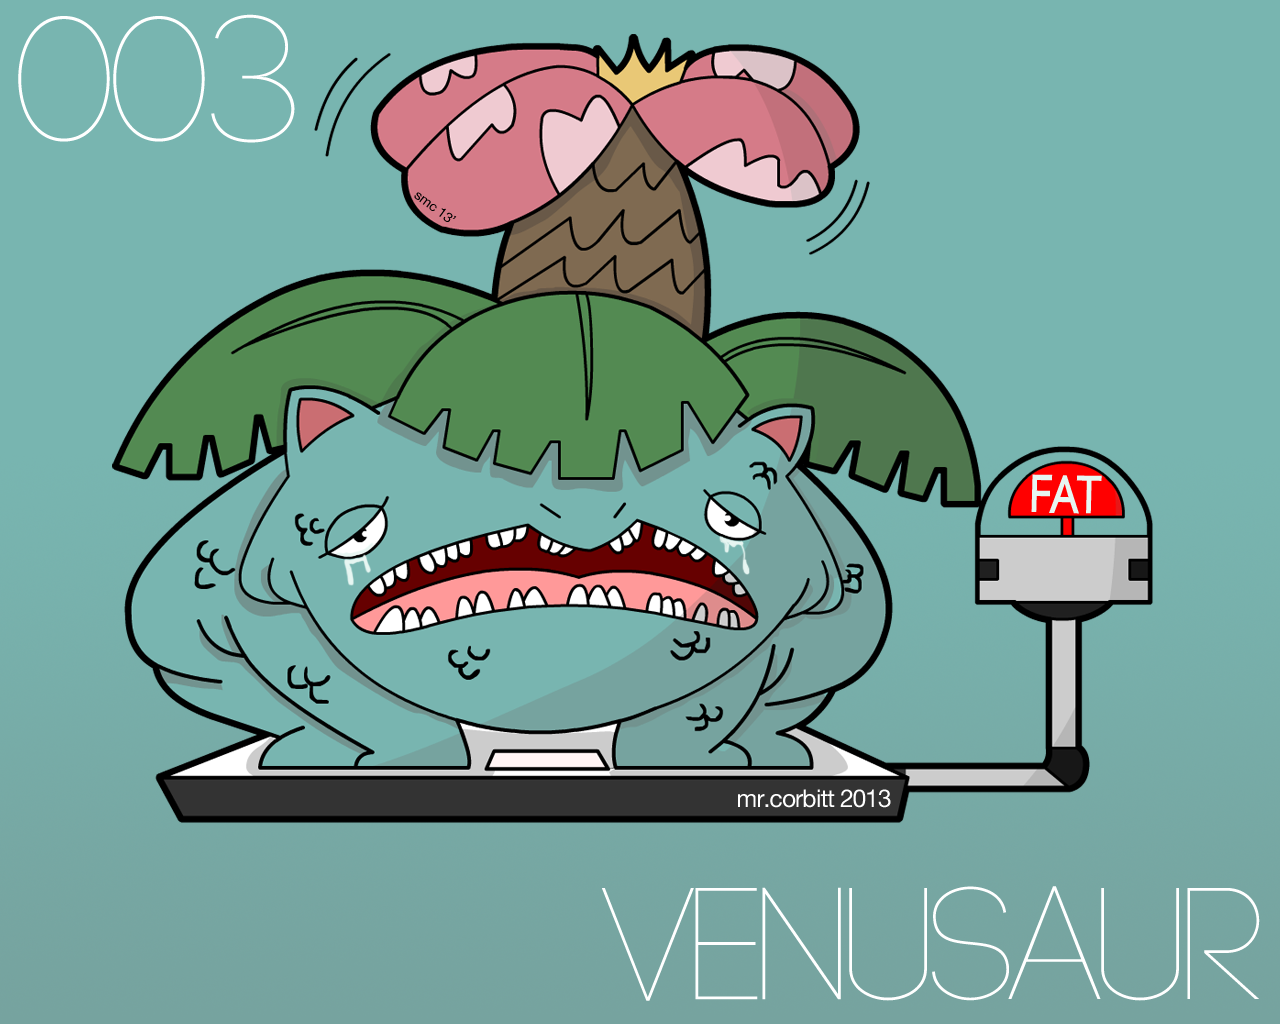 Venusaur is Overweight